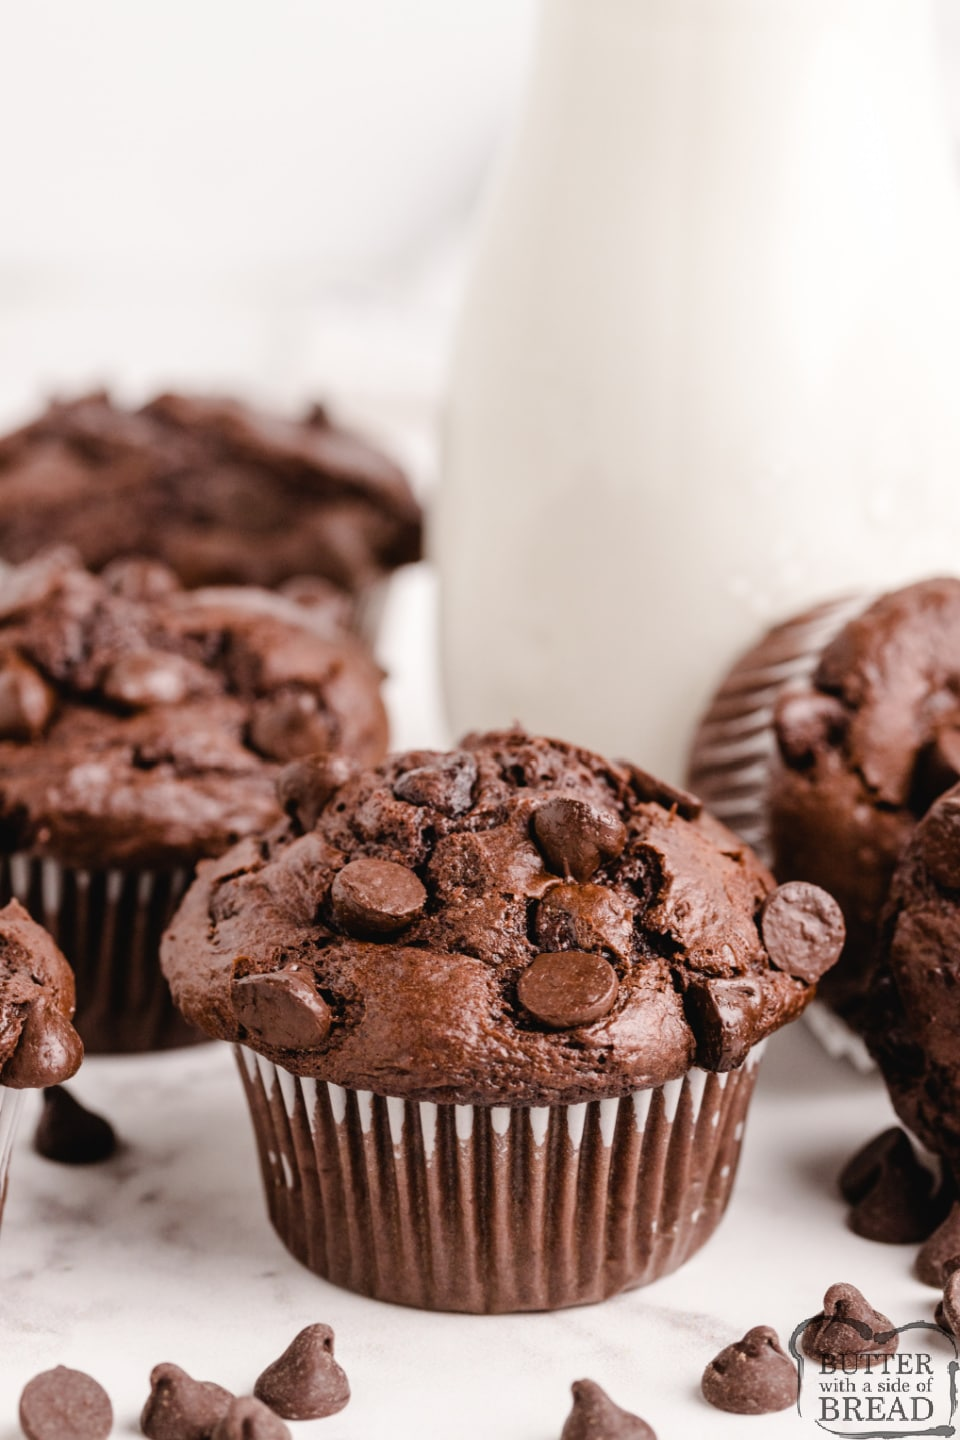 Copycat Costco Chocolate Muffins taste just like the amazing double chocolate muffins from Costco. Easy chocolate chocolate chip muffin recipe that everyone loves!